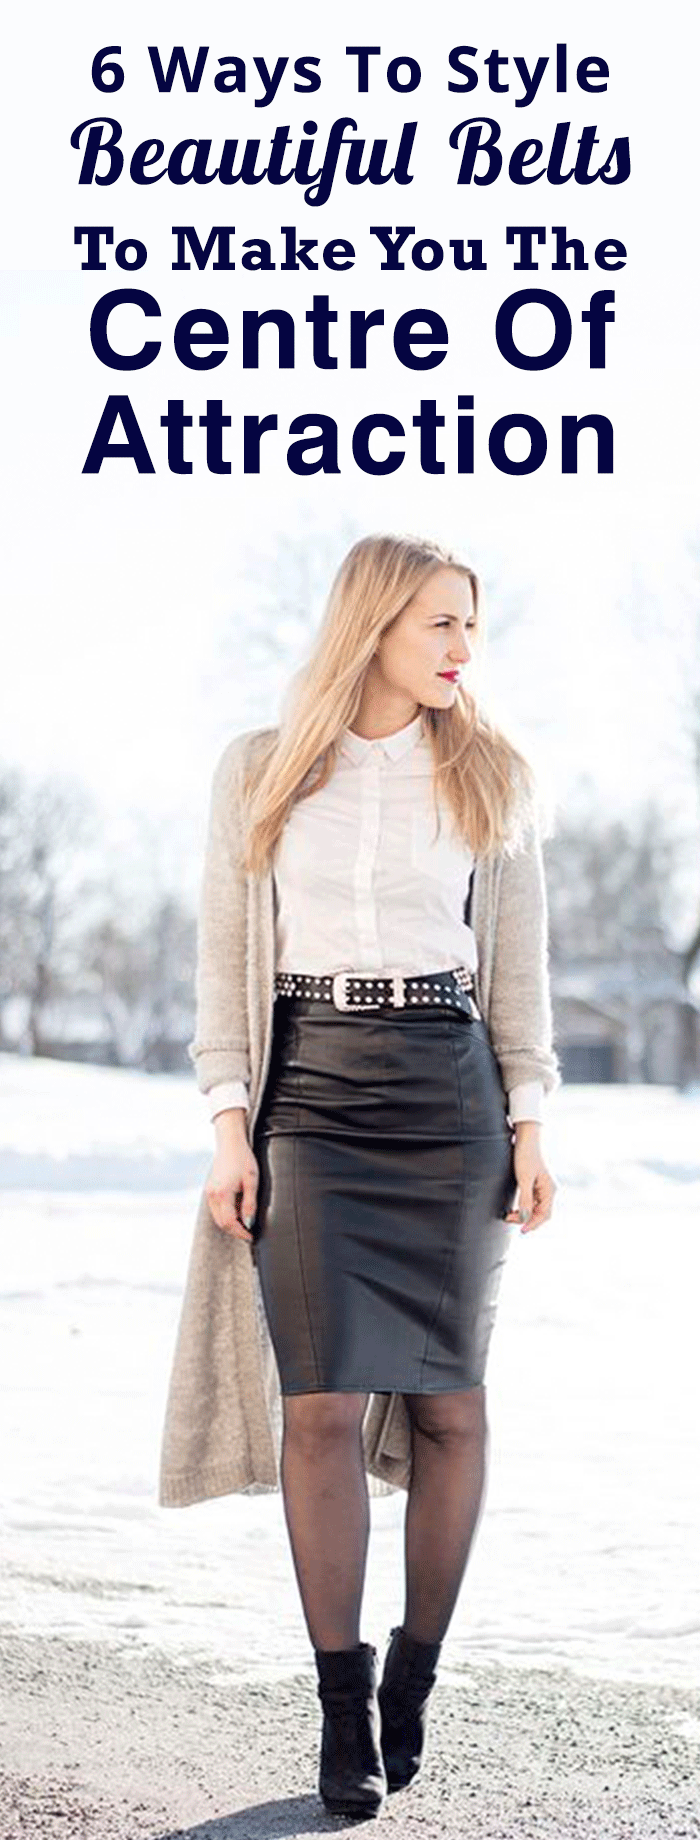 6 Ways To Style Beautiful Belts To Make You The Centre Of Attraction